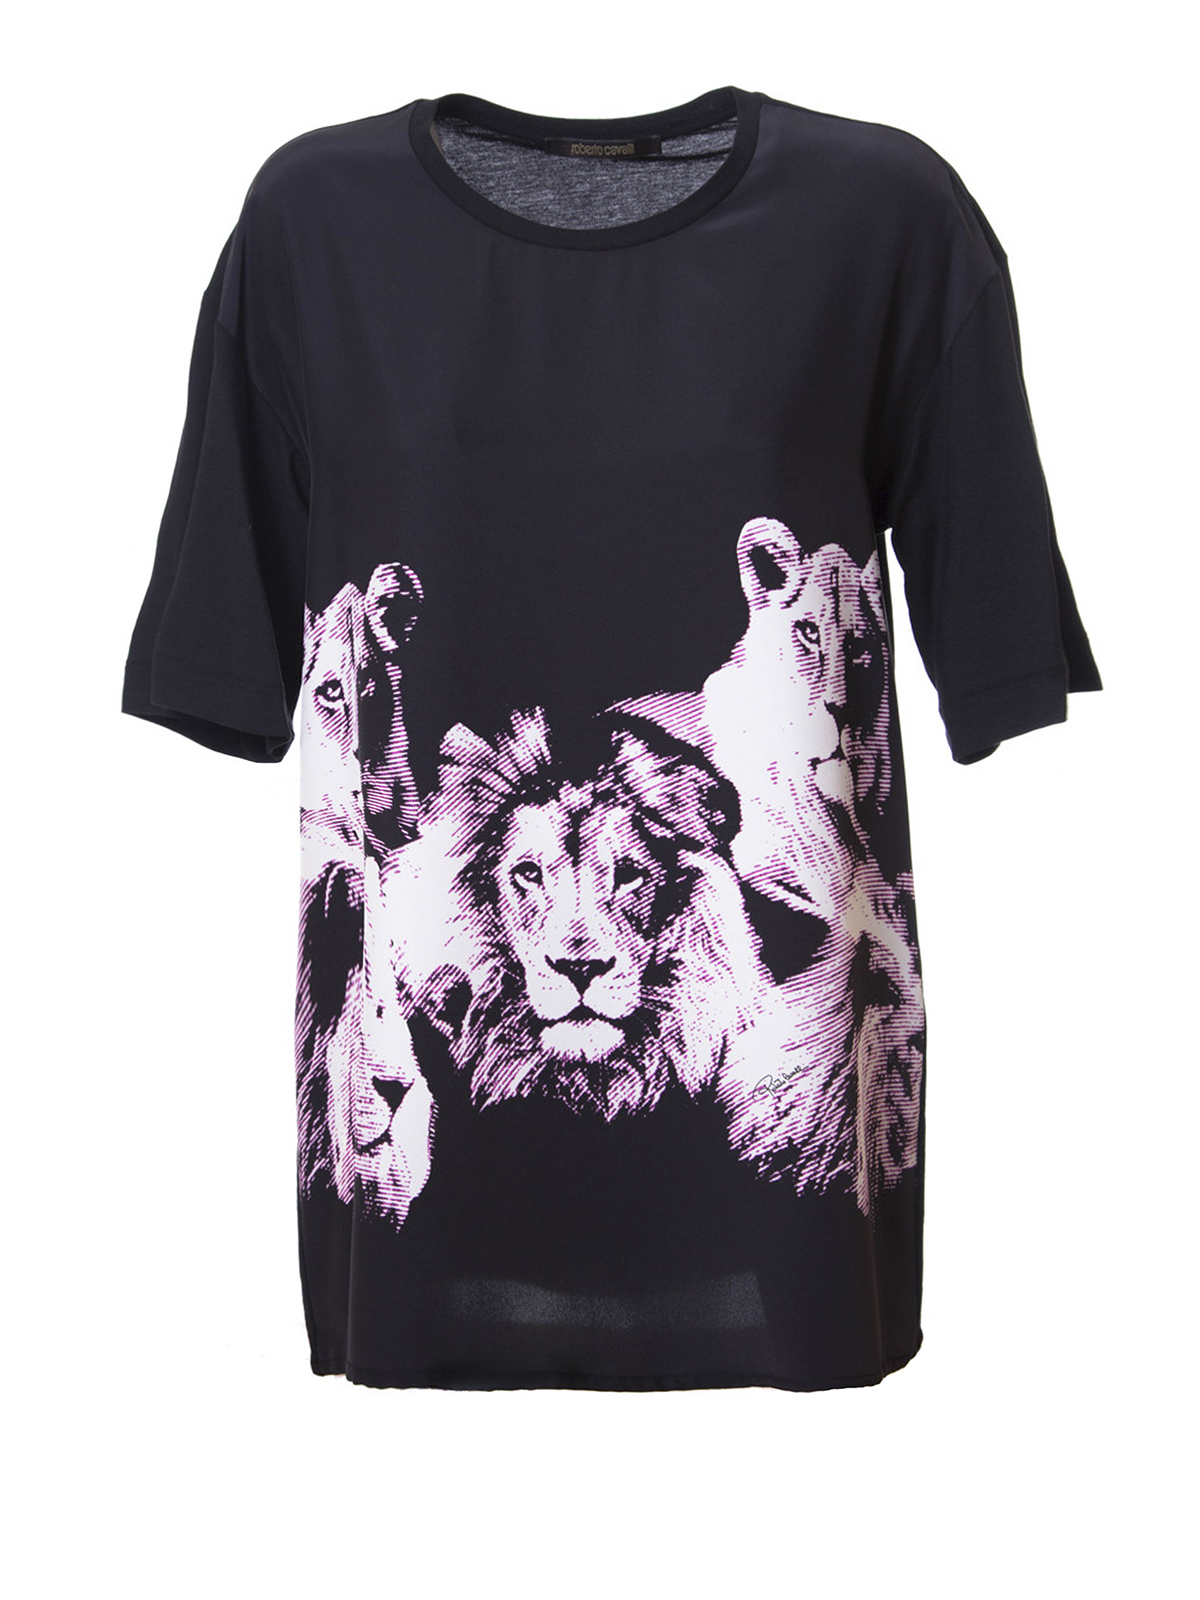 Shop Roberto Cavalli studded heraldic logo T-shirt - Grey on Stylicy Singapore for $